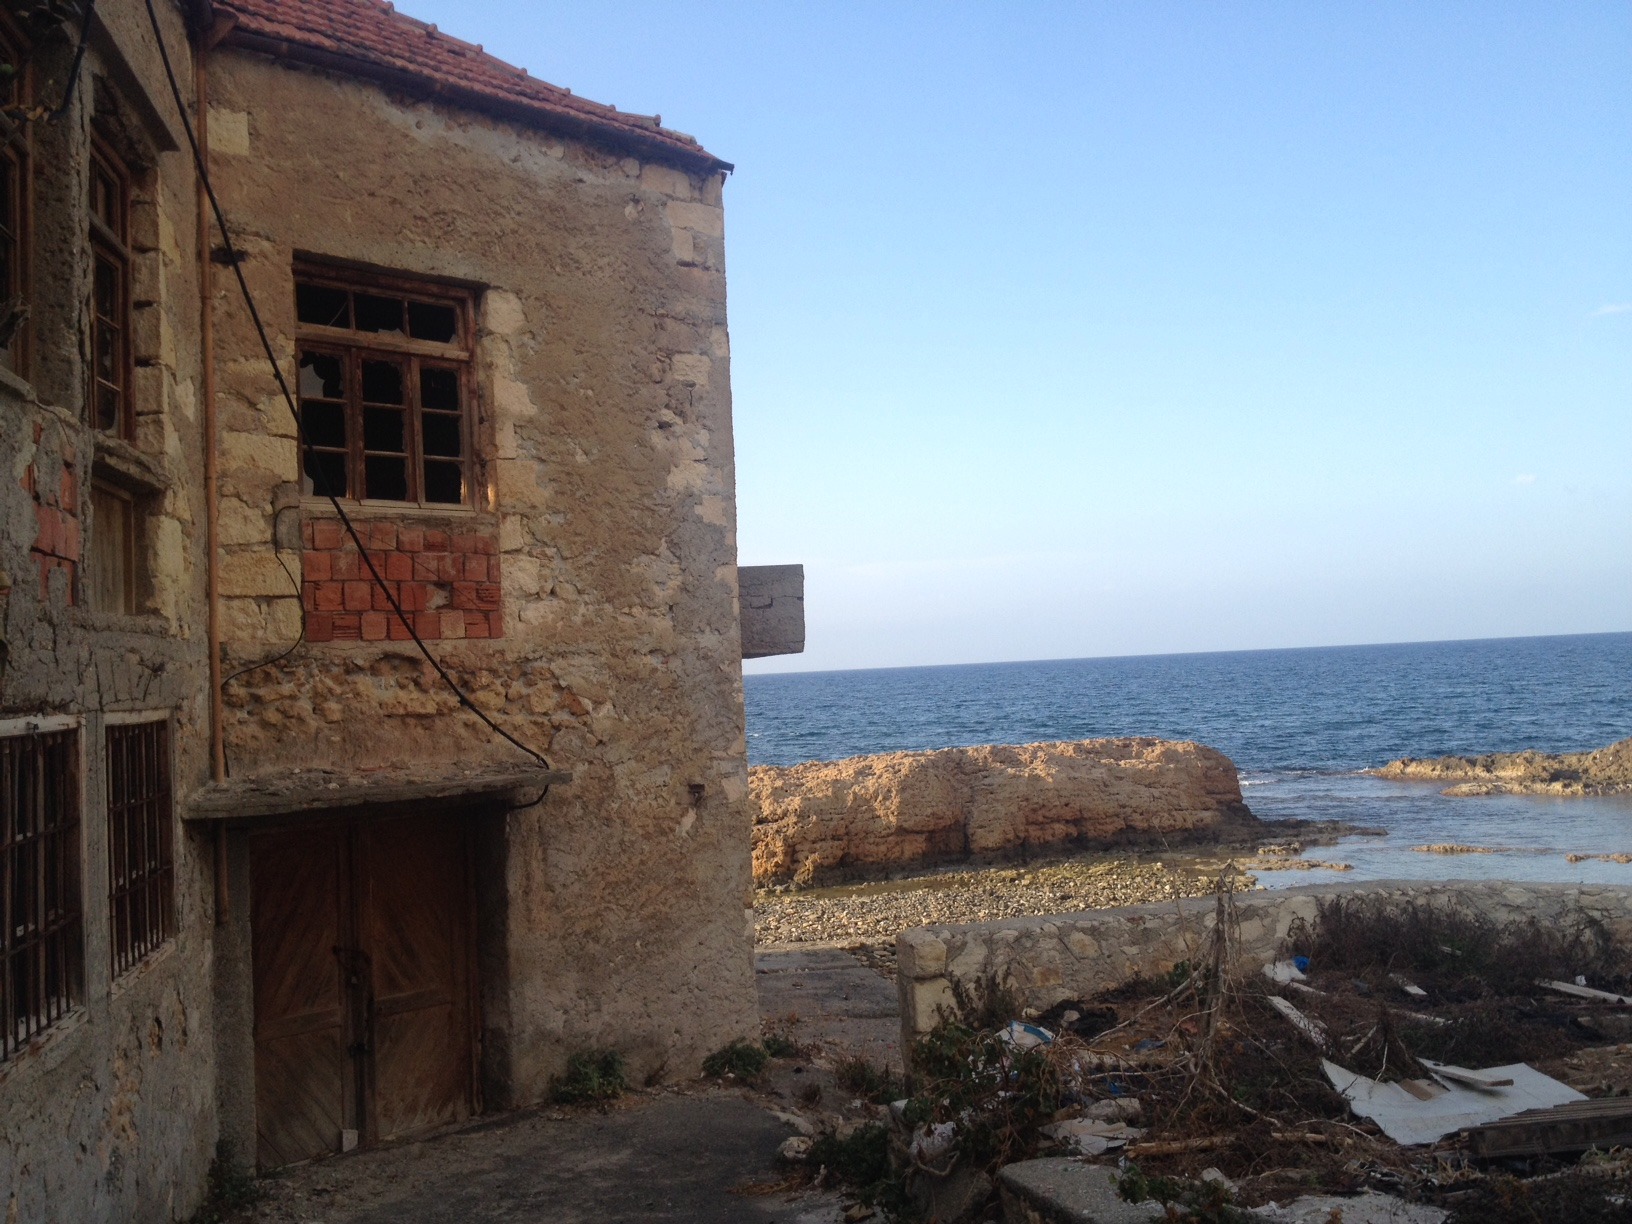 SeaFront Renovation Project in an amazing location